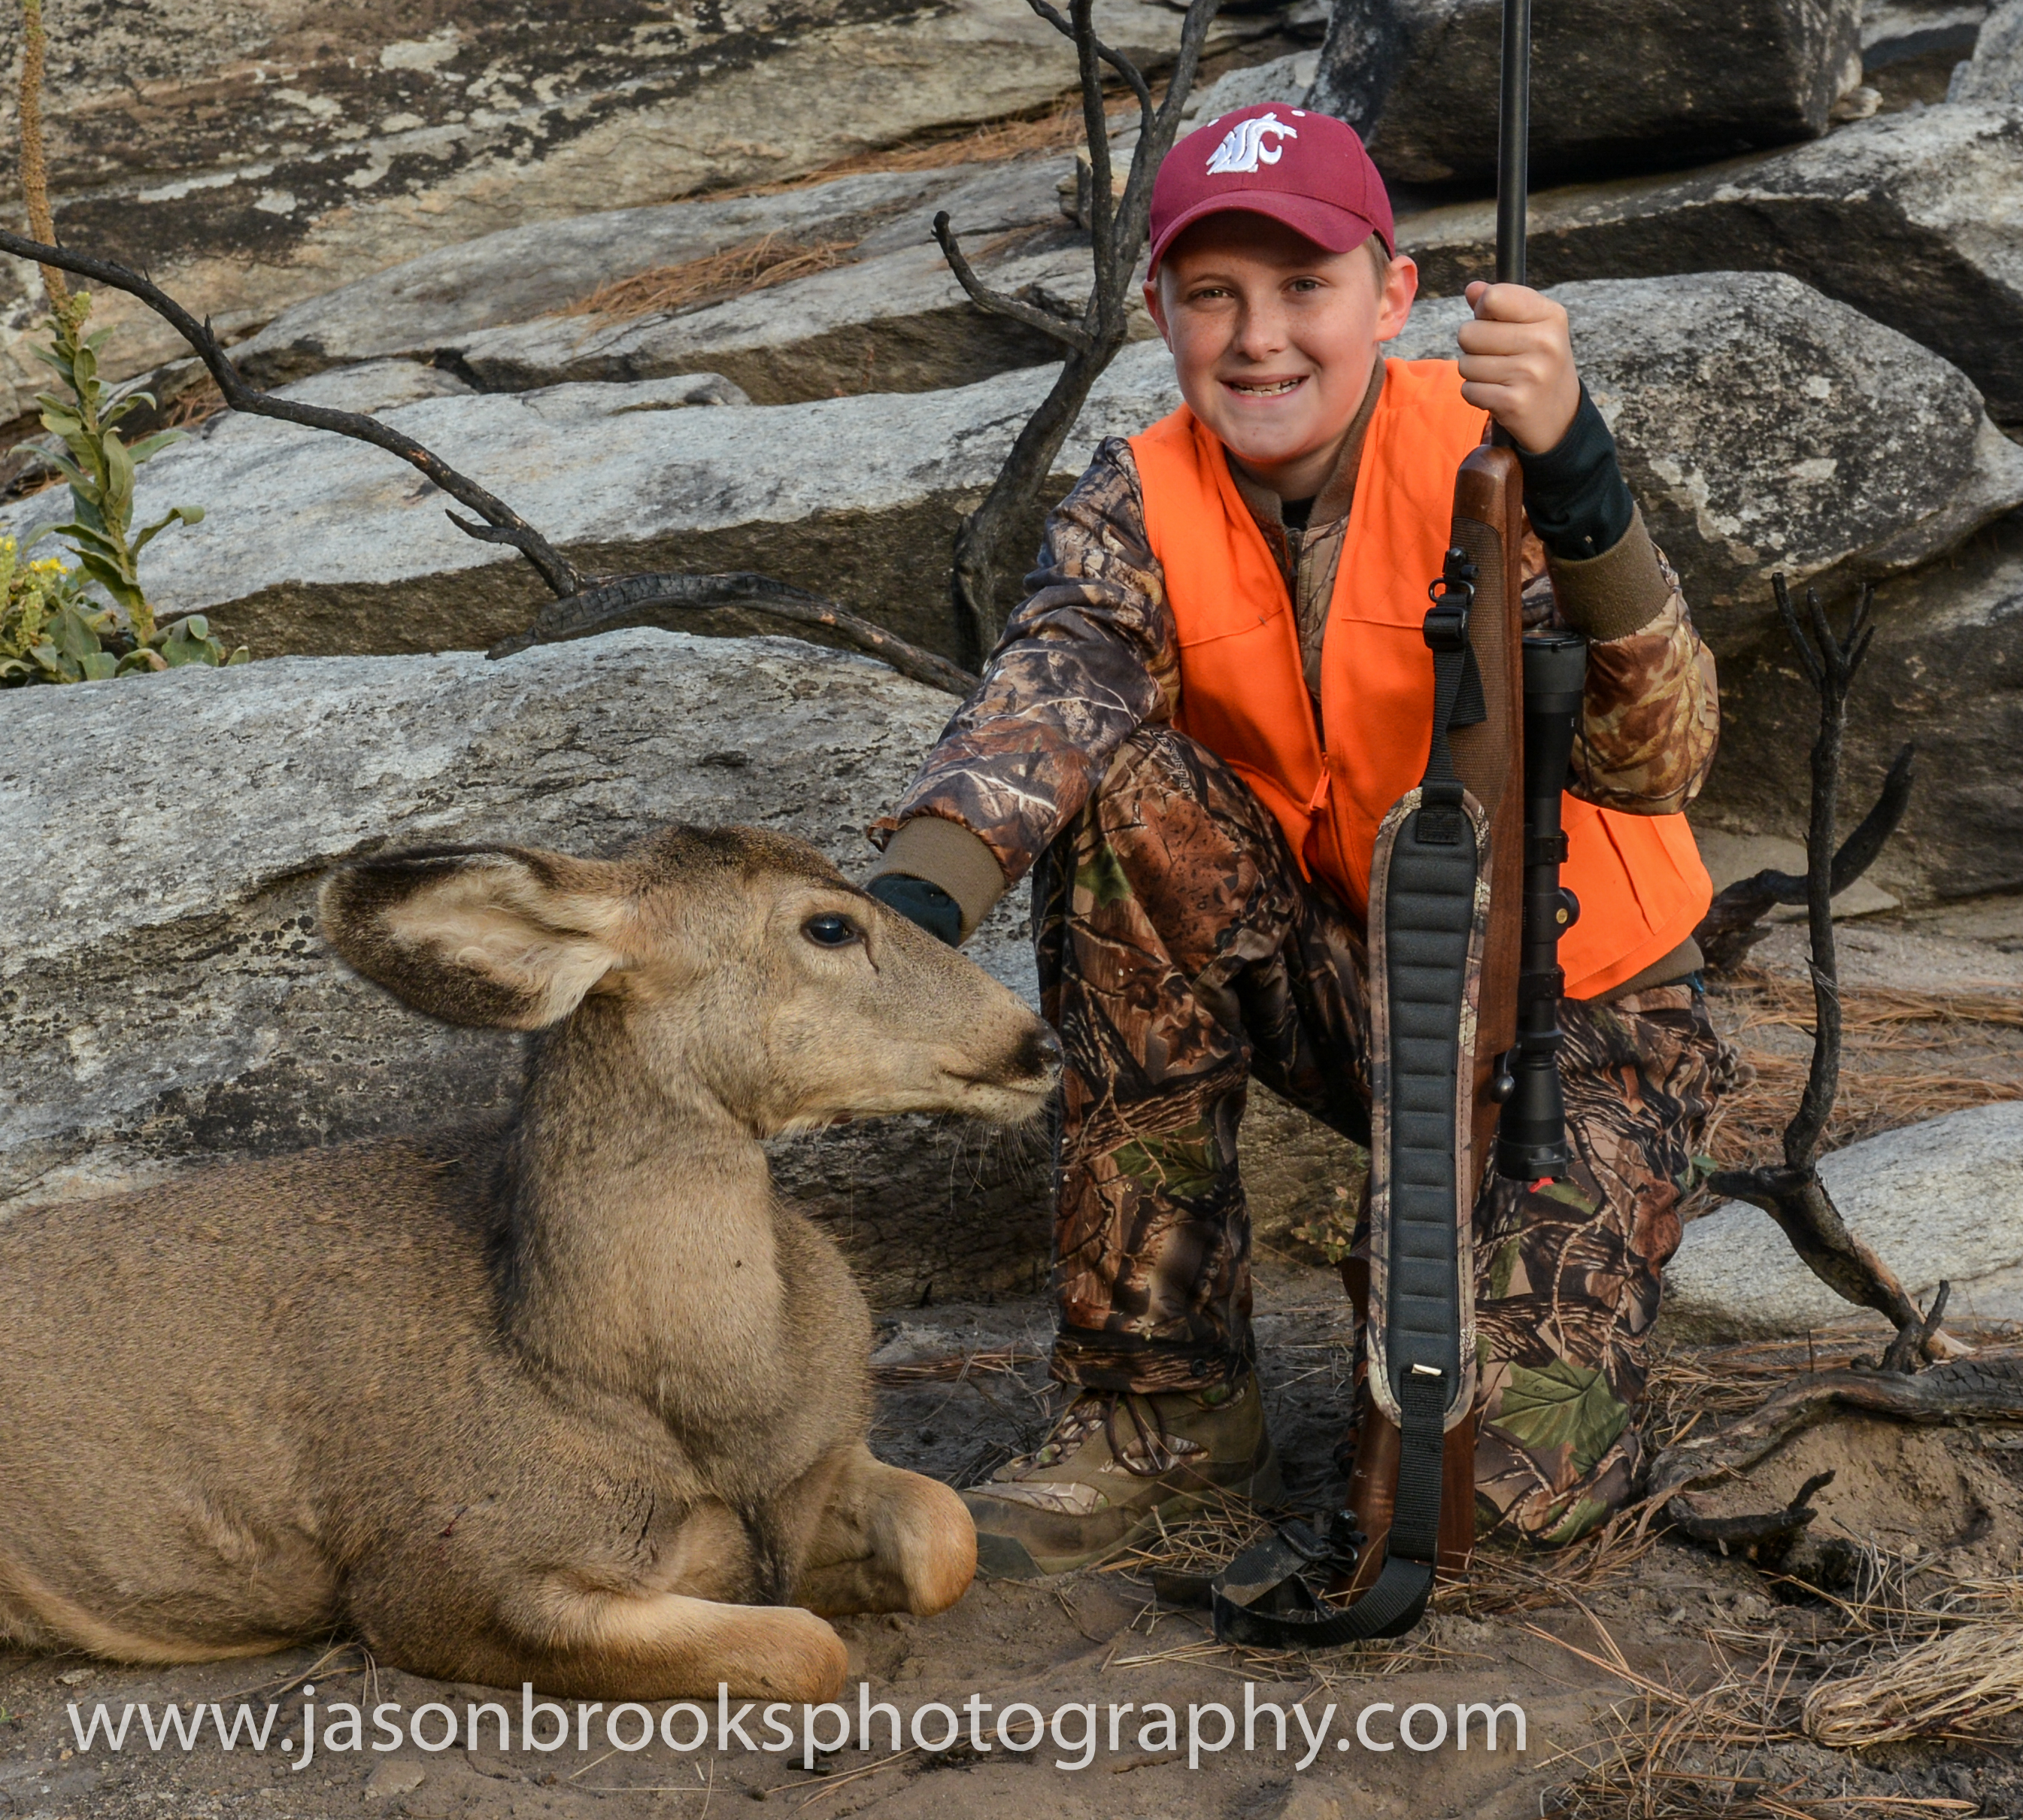 Adam Brooks with his first deer, a muley doe, and a successful hunt-Jason Brooks